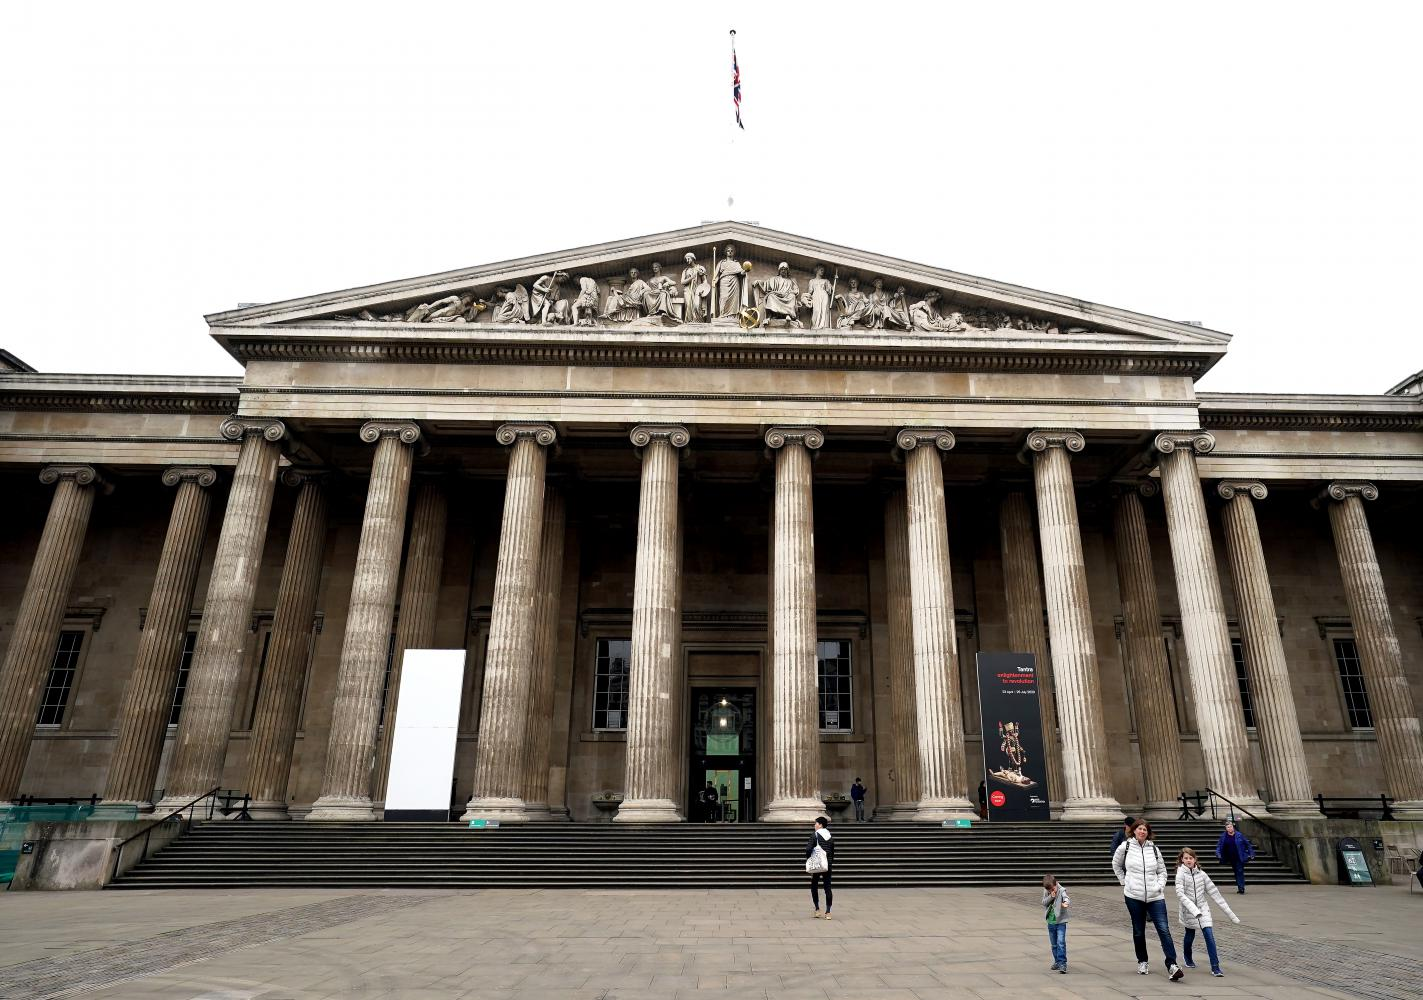 Das British Museum in London